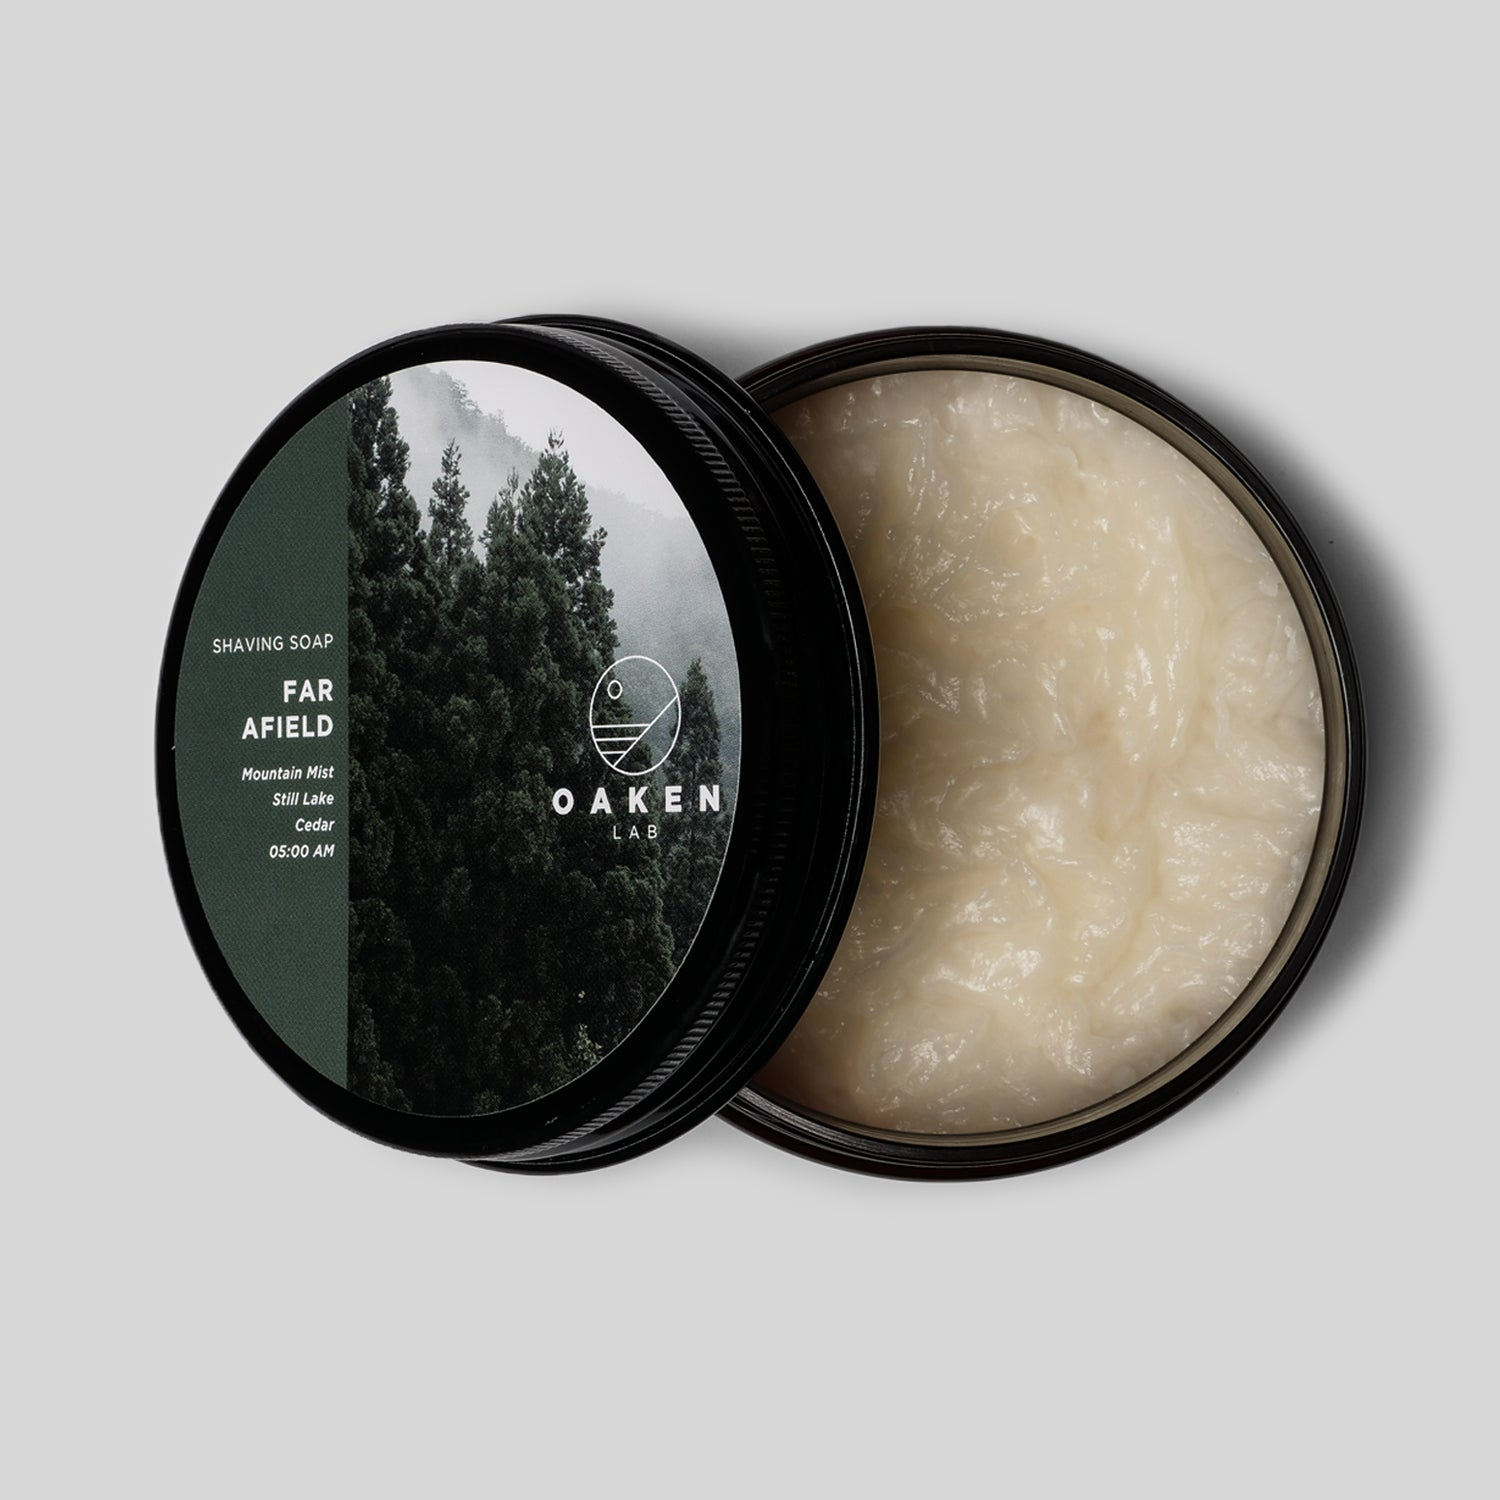 Shaving Soap - Far Afield